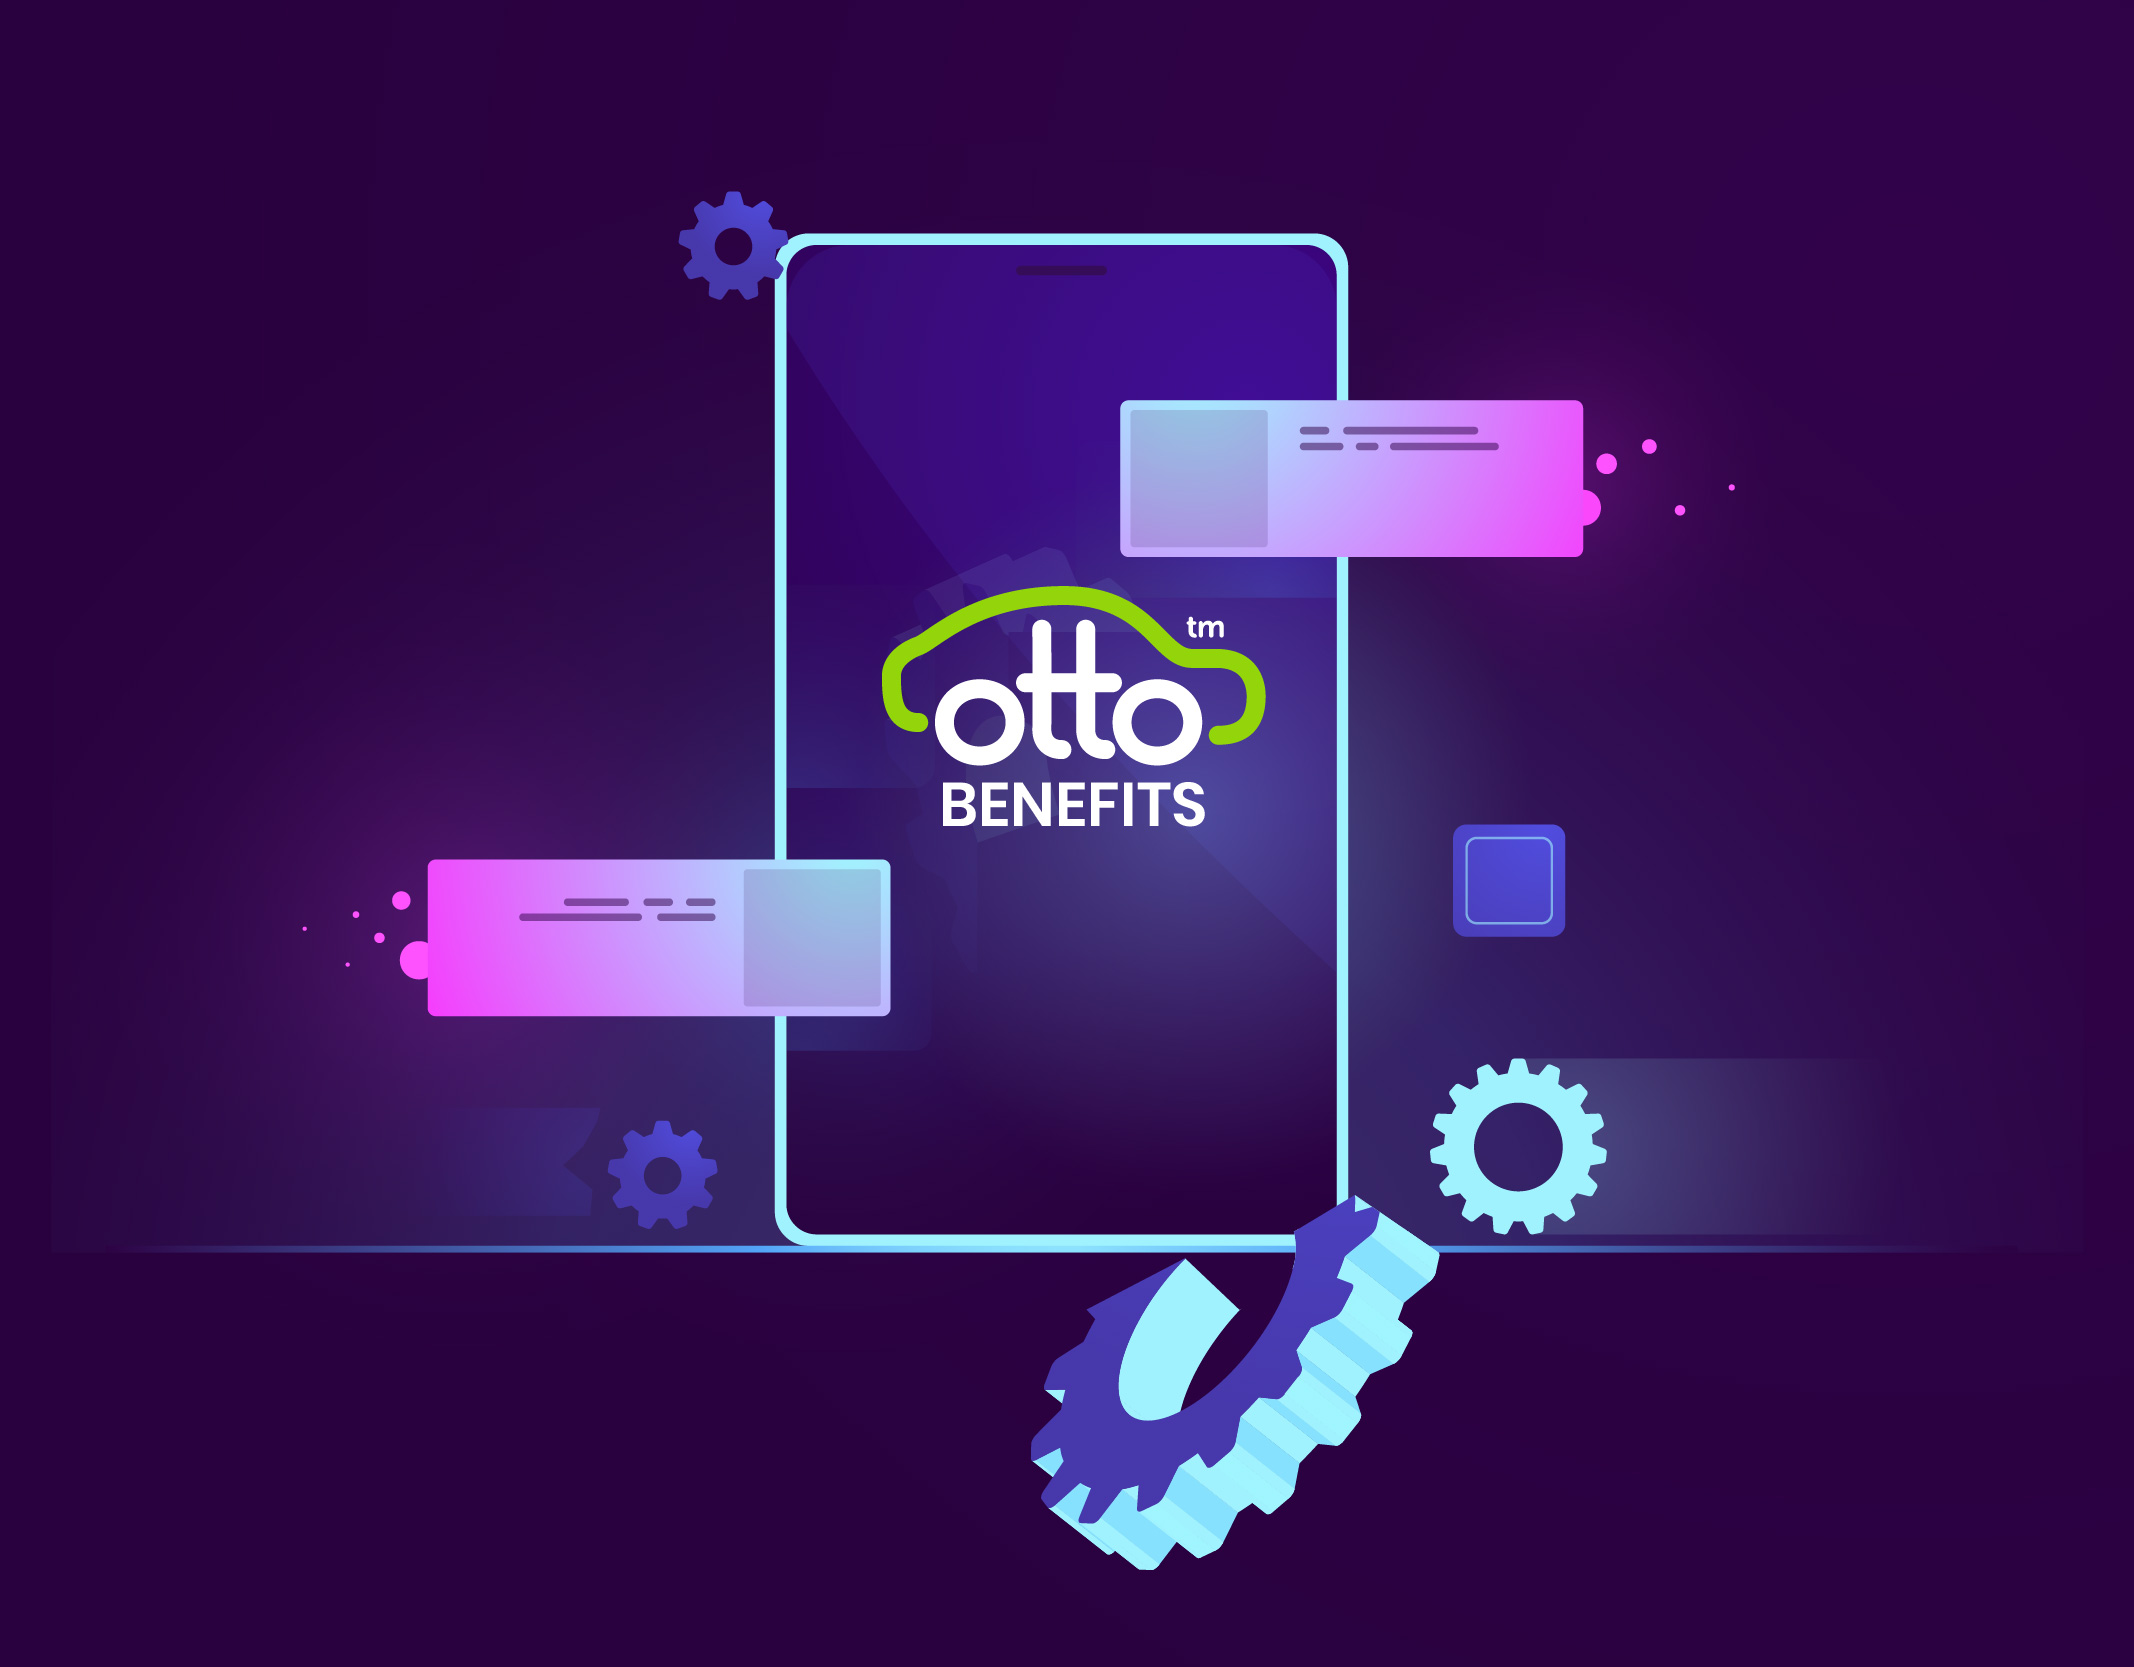 Otto Rent 2 Buy Benefits